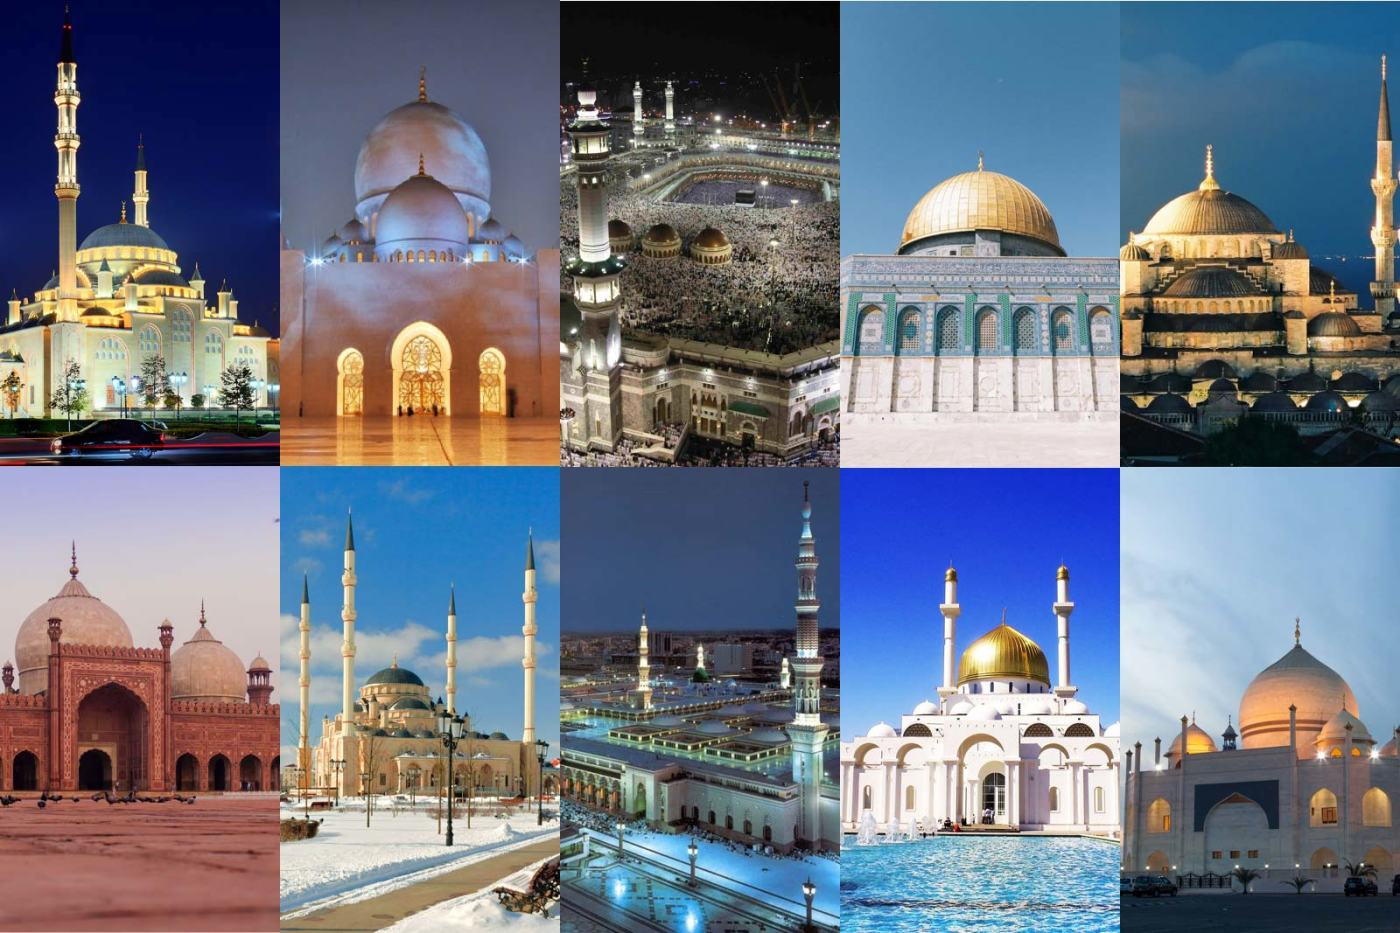 Pictures of famous mosques in the world with names